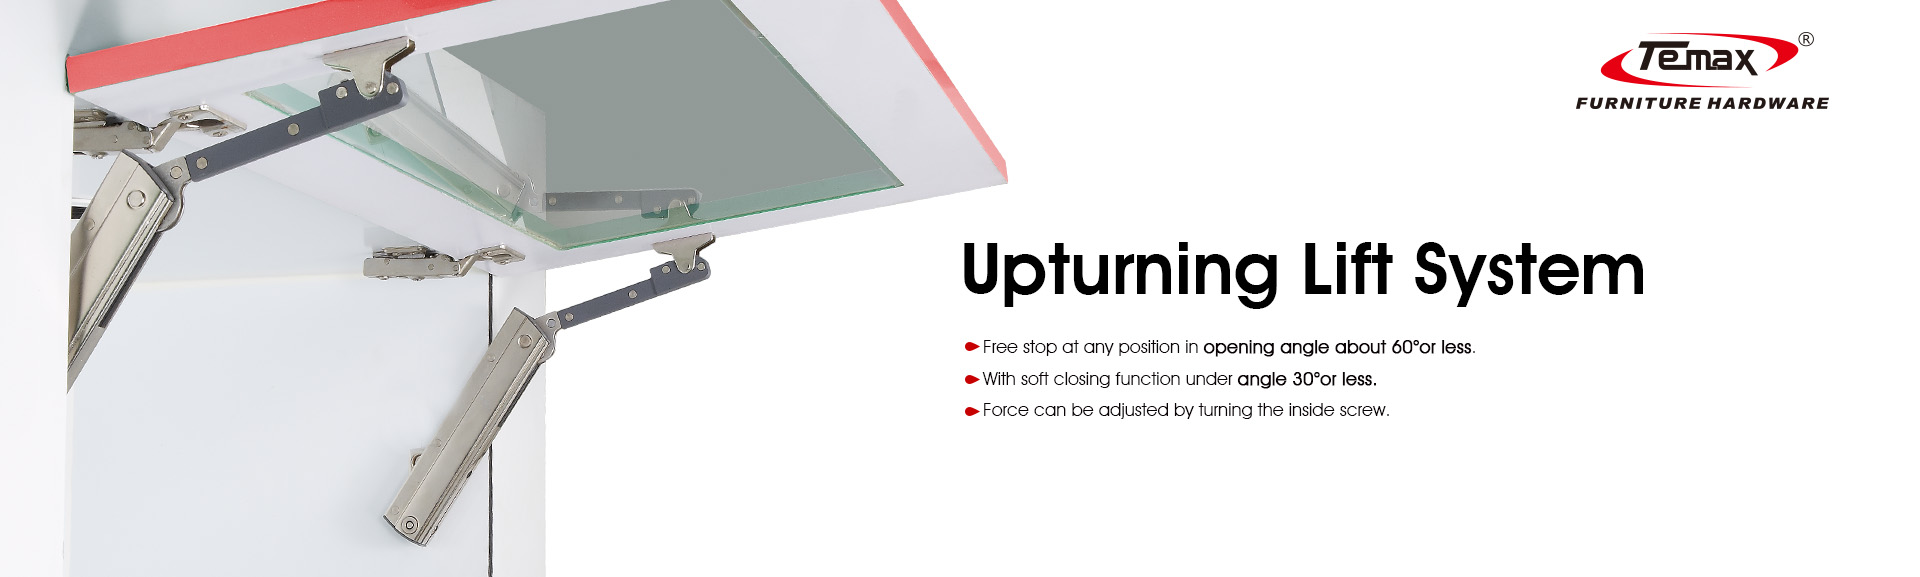 Upturning Lift System FS082